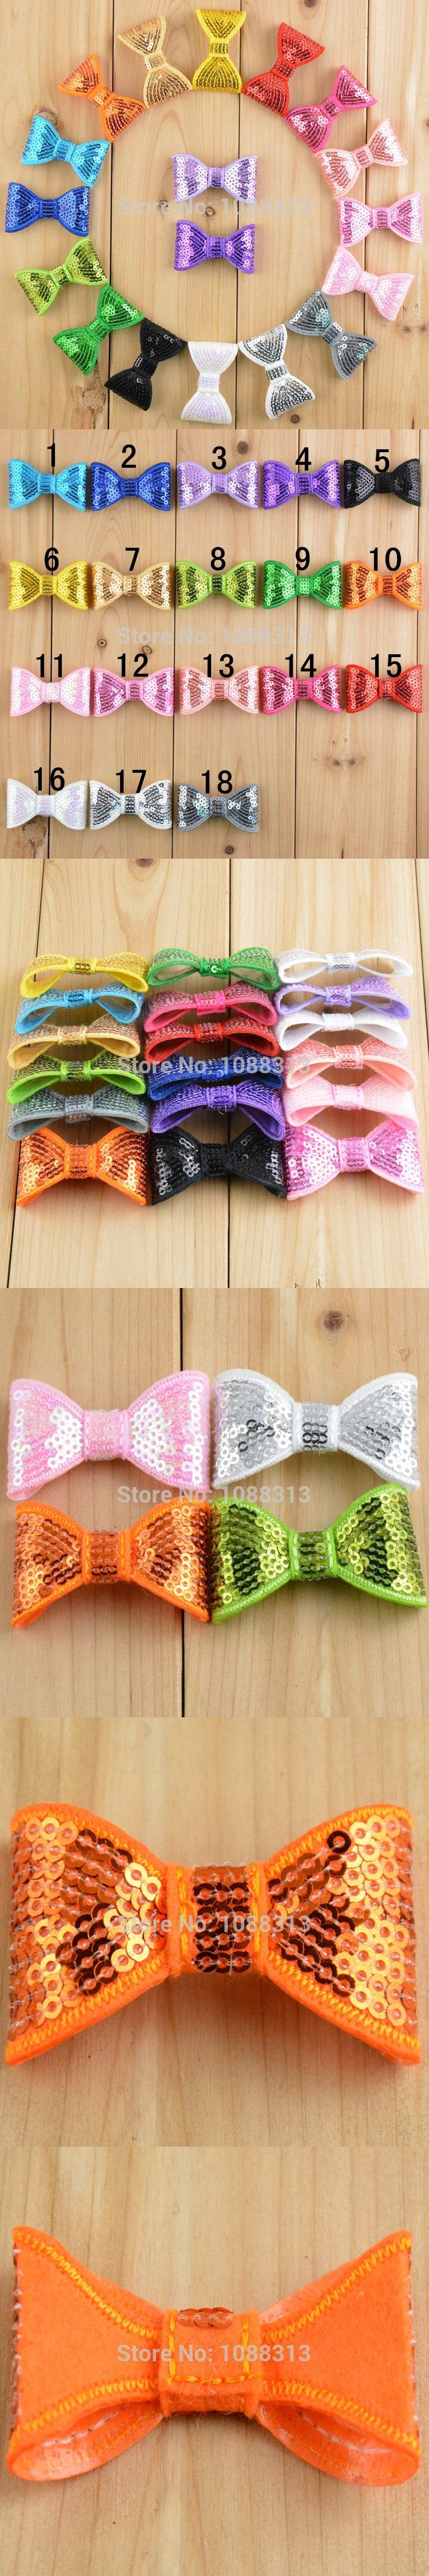 Free shipping 60pcs 5*3CM handmade sequin knot bows for diy jewelry making Toddler baby headband hairband decoration bows